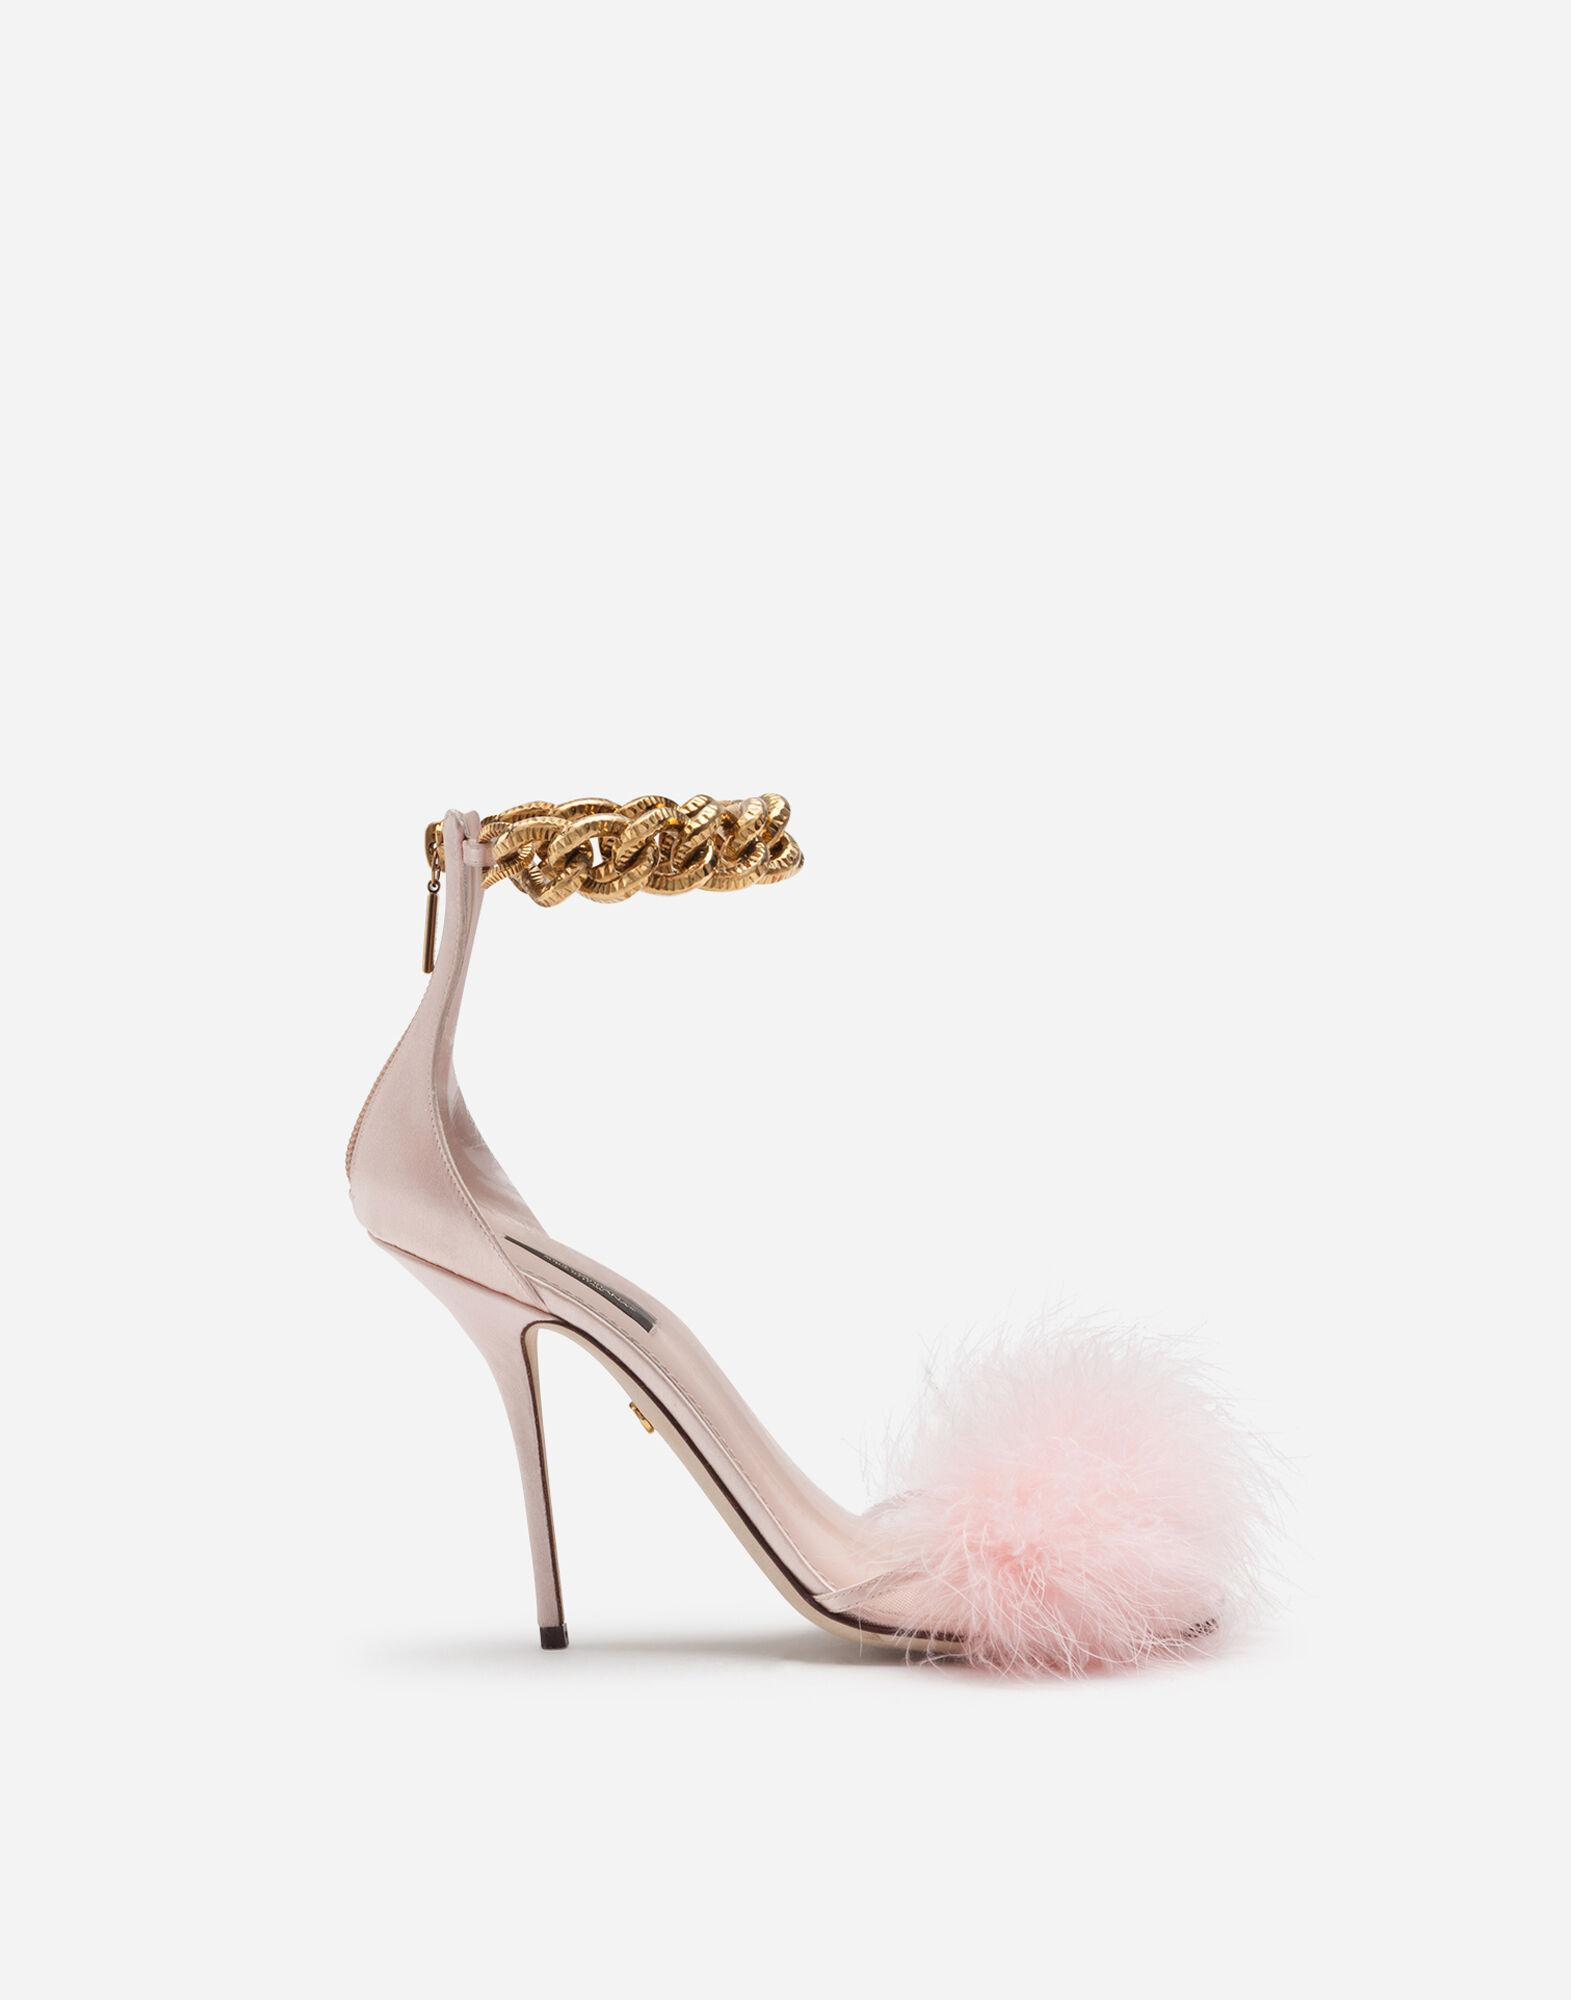 Marabou sandals with chain embellishment